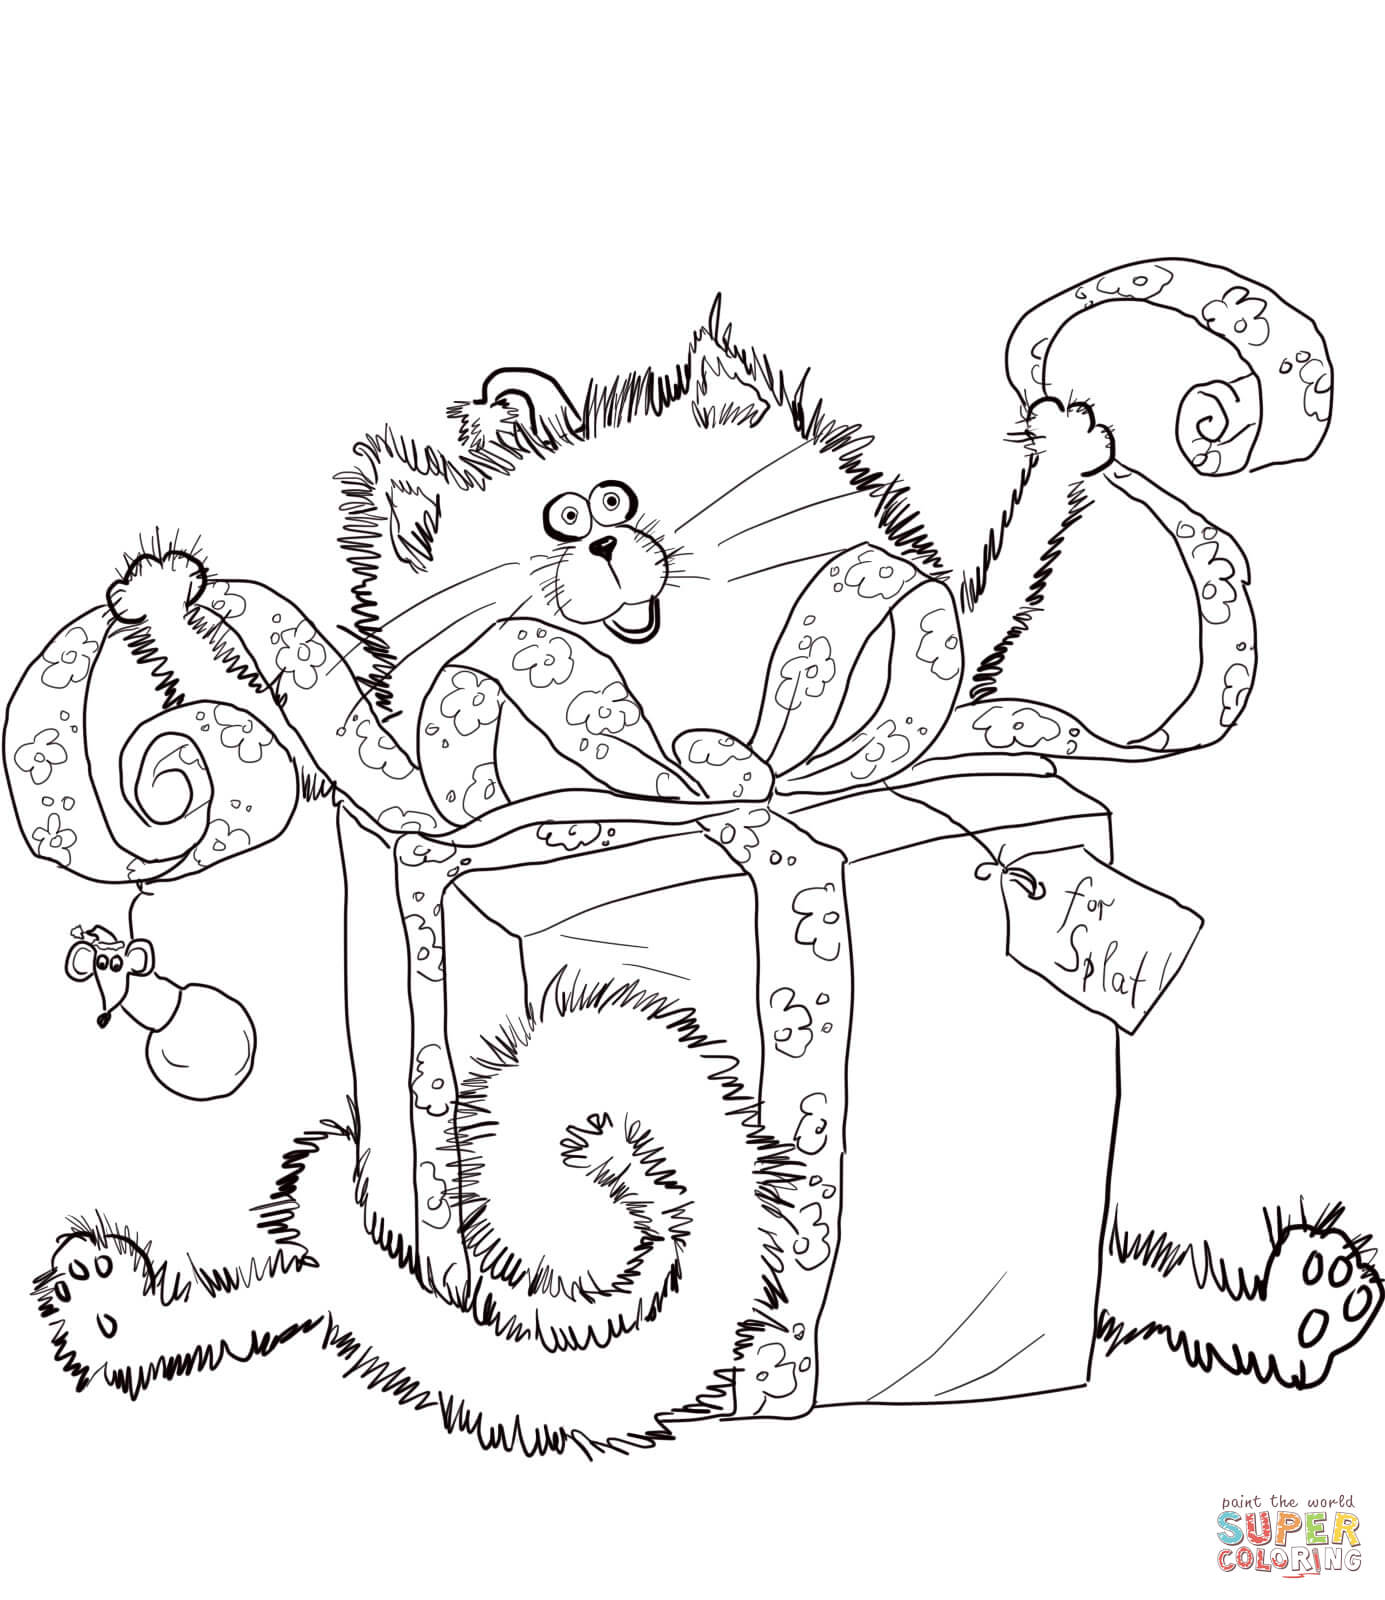 Coloring Pages Of Merry Christmas With Splat Page Free Printable